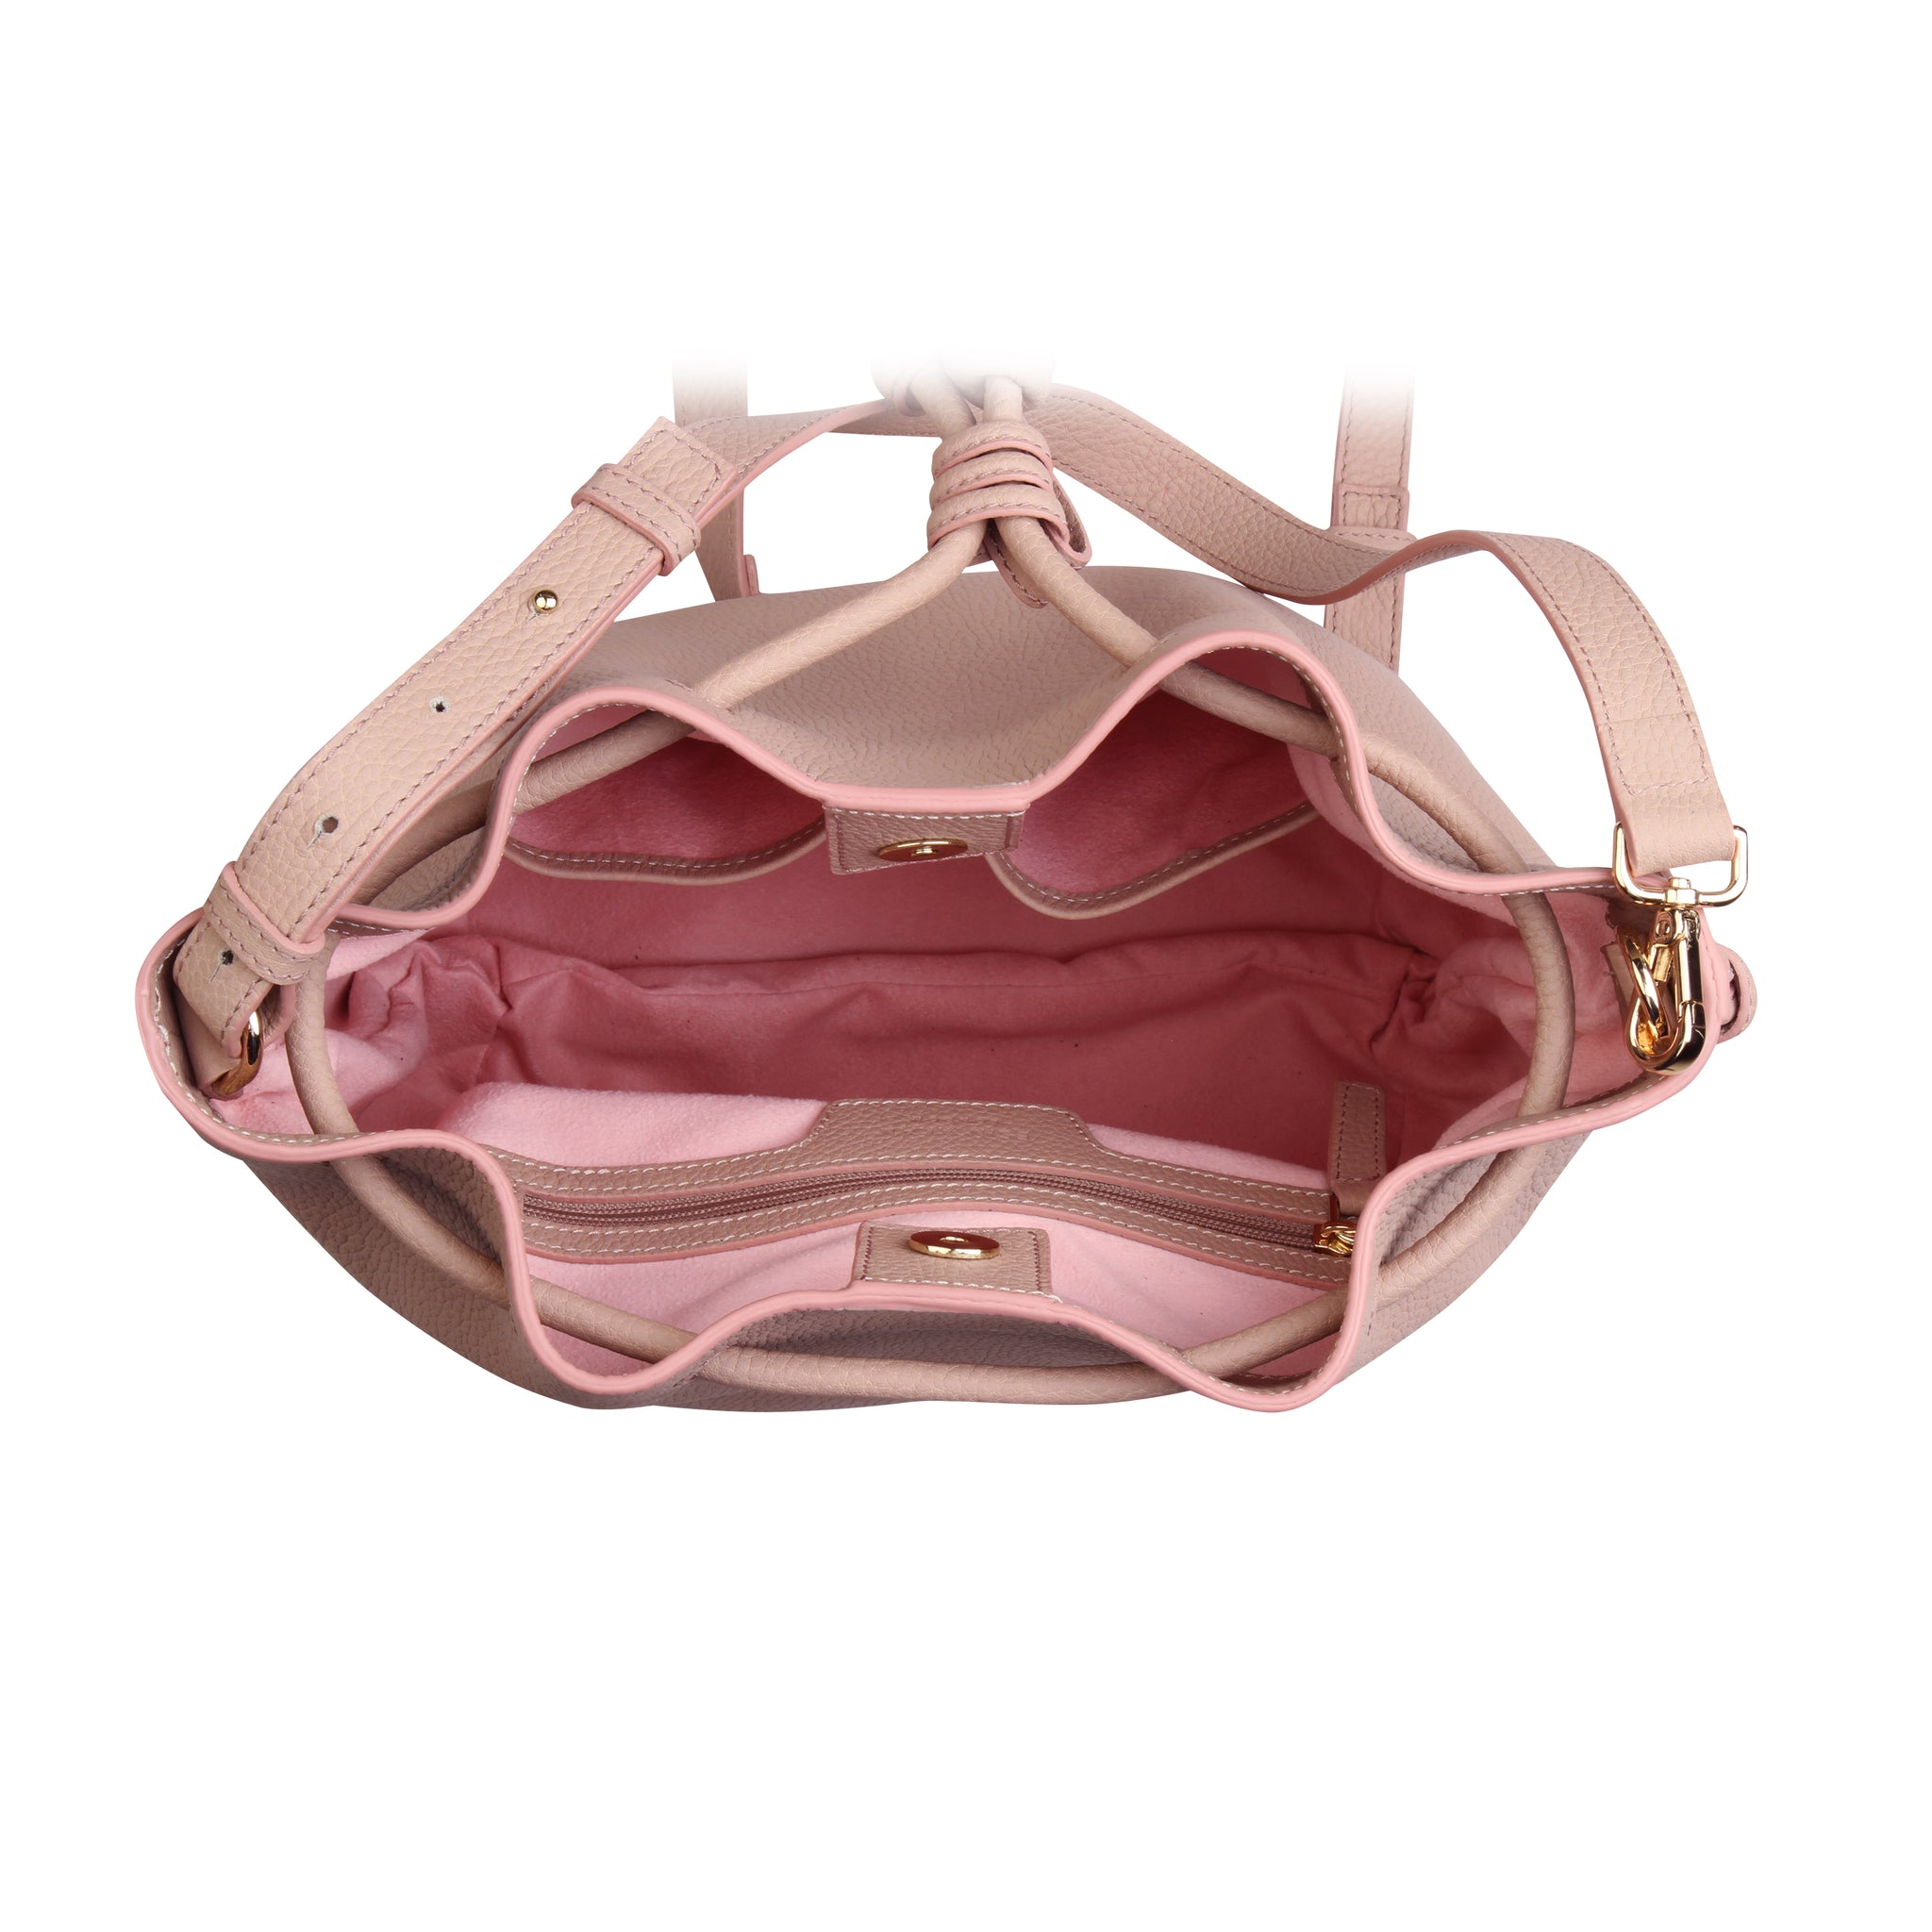 A convertible laptop size womens leather backpack in pink, interior image.